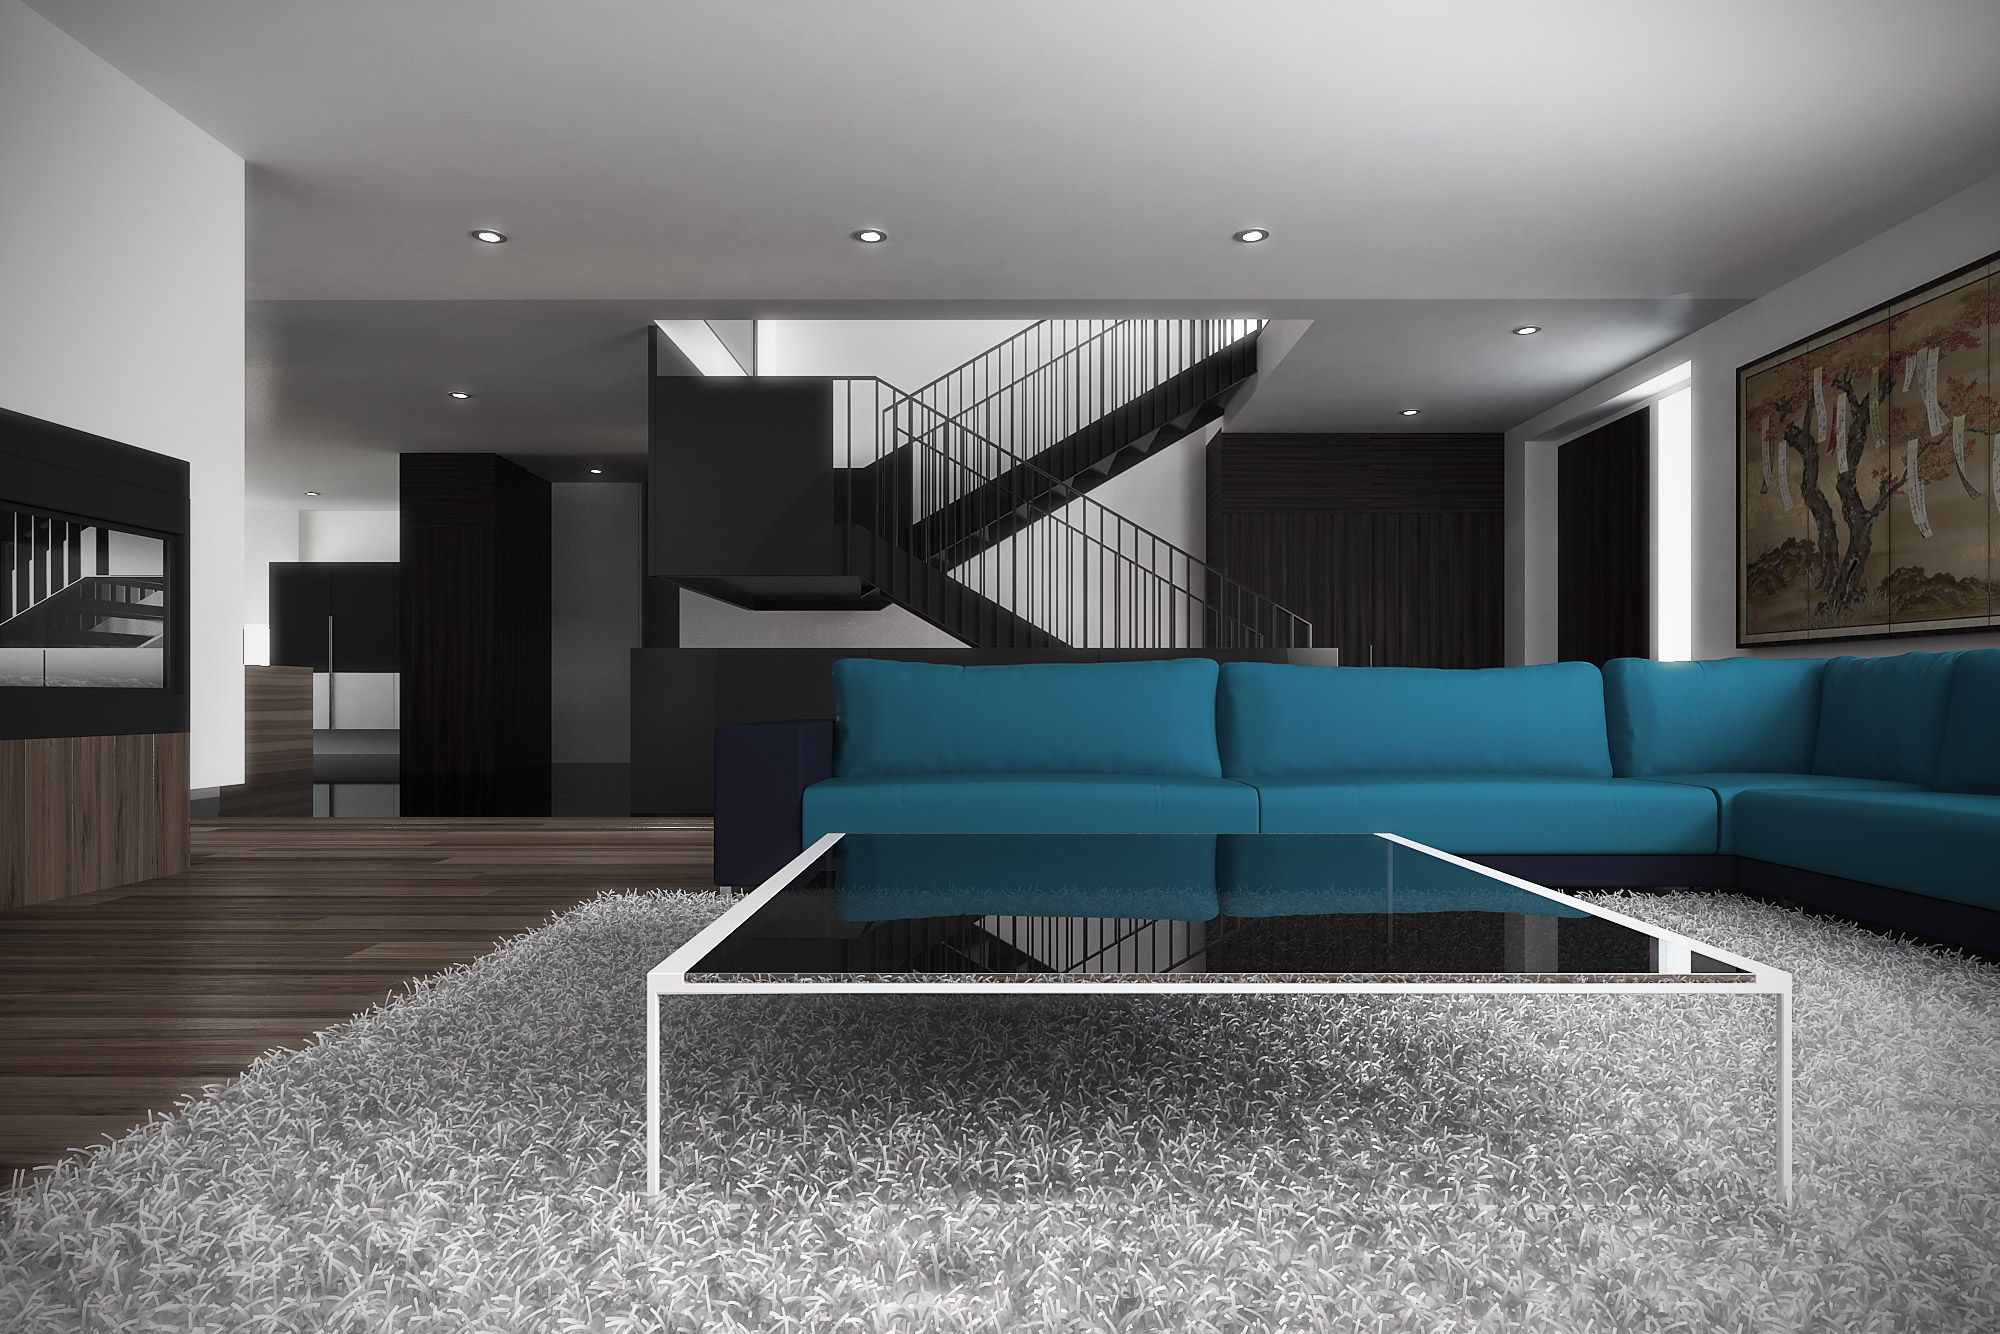 Residence In Montreal Arccentric 3d Illustration